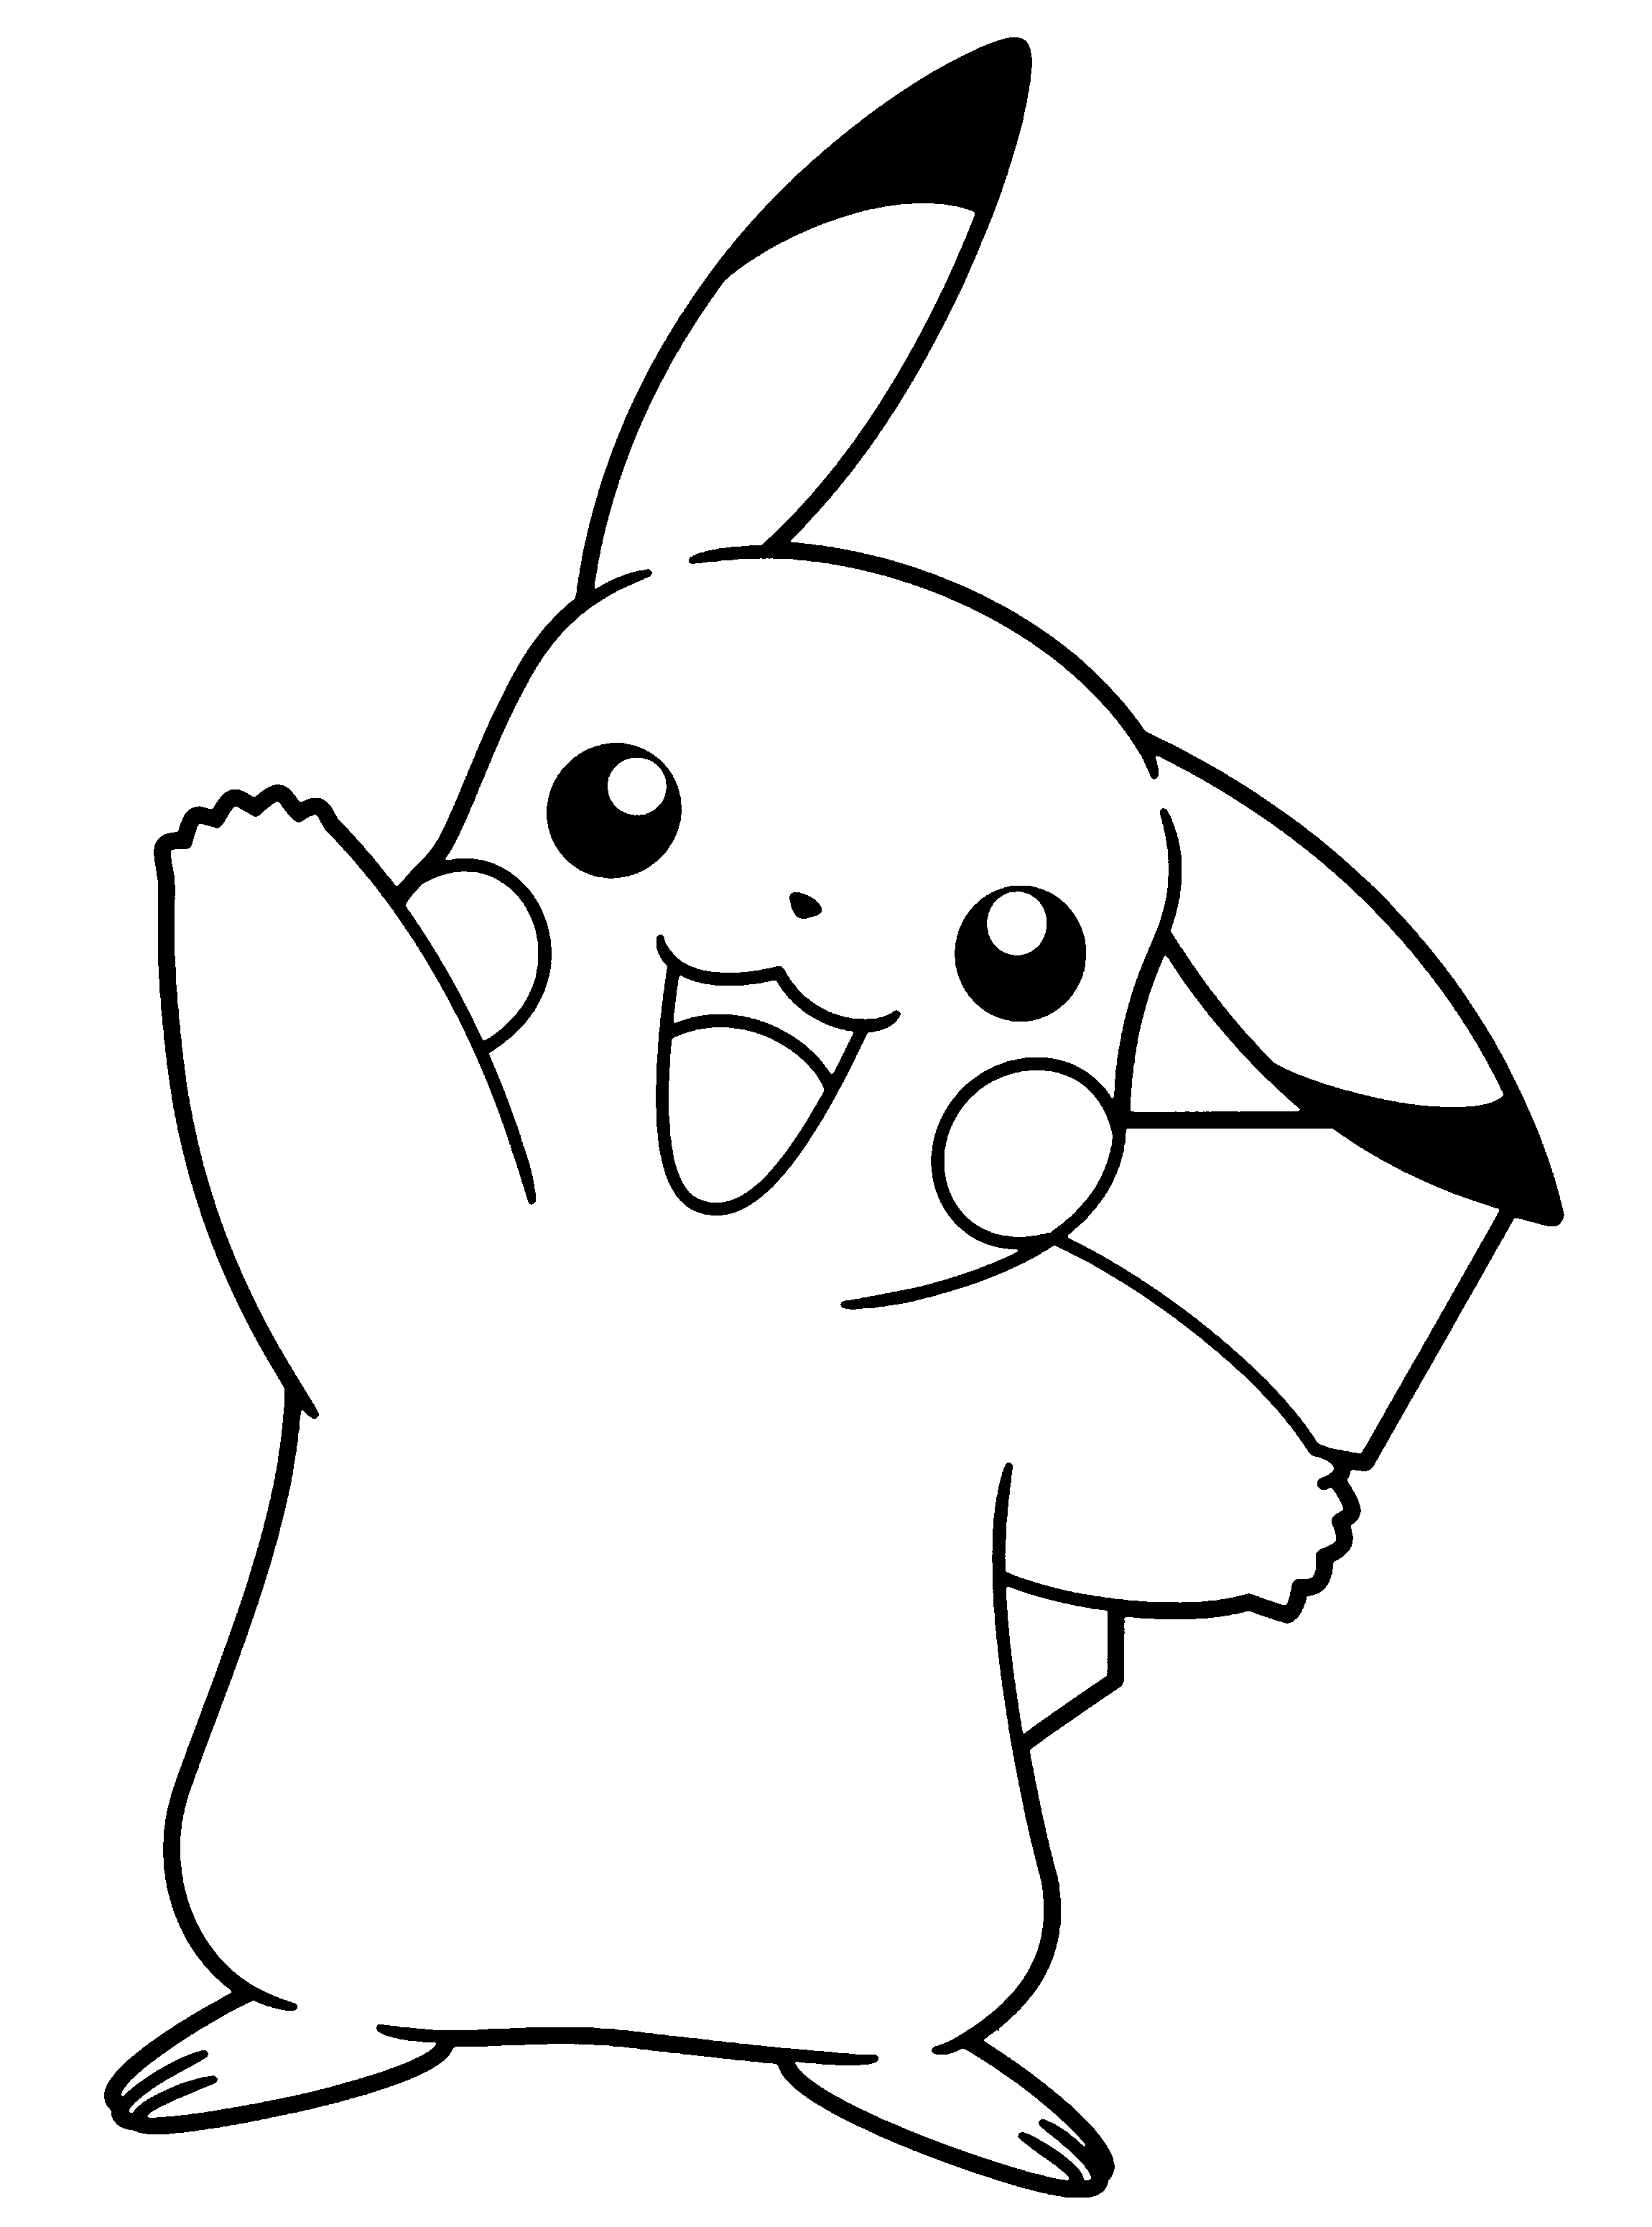 pokemon pictures of pokemon black and white free printable pokemon coloring pages 37 pics how to of white and black pictures pokemon pokemon